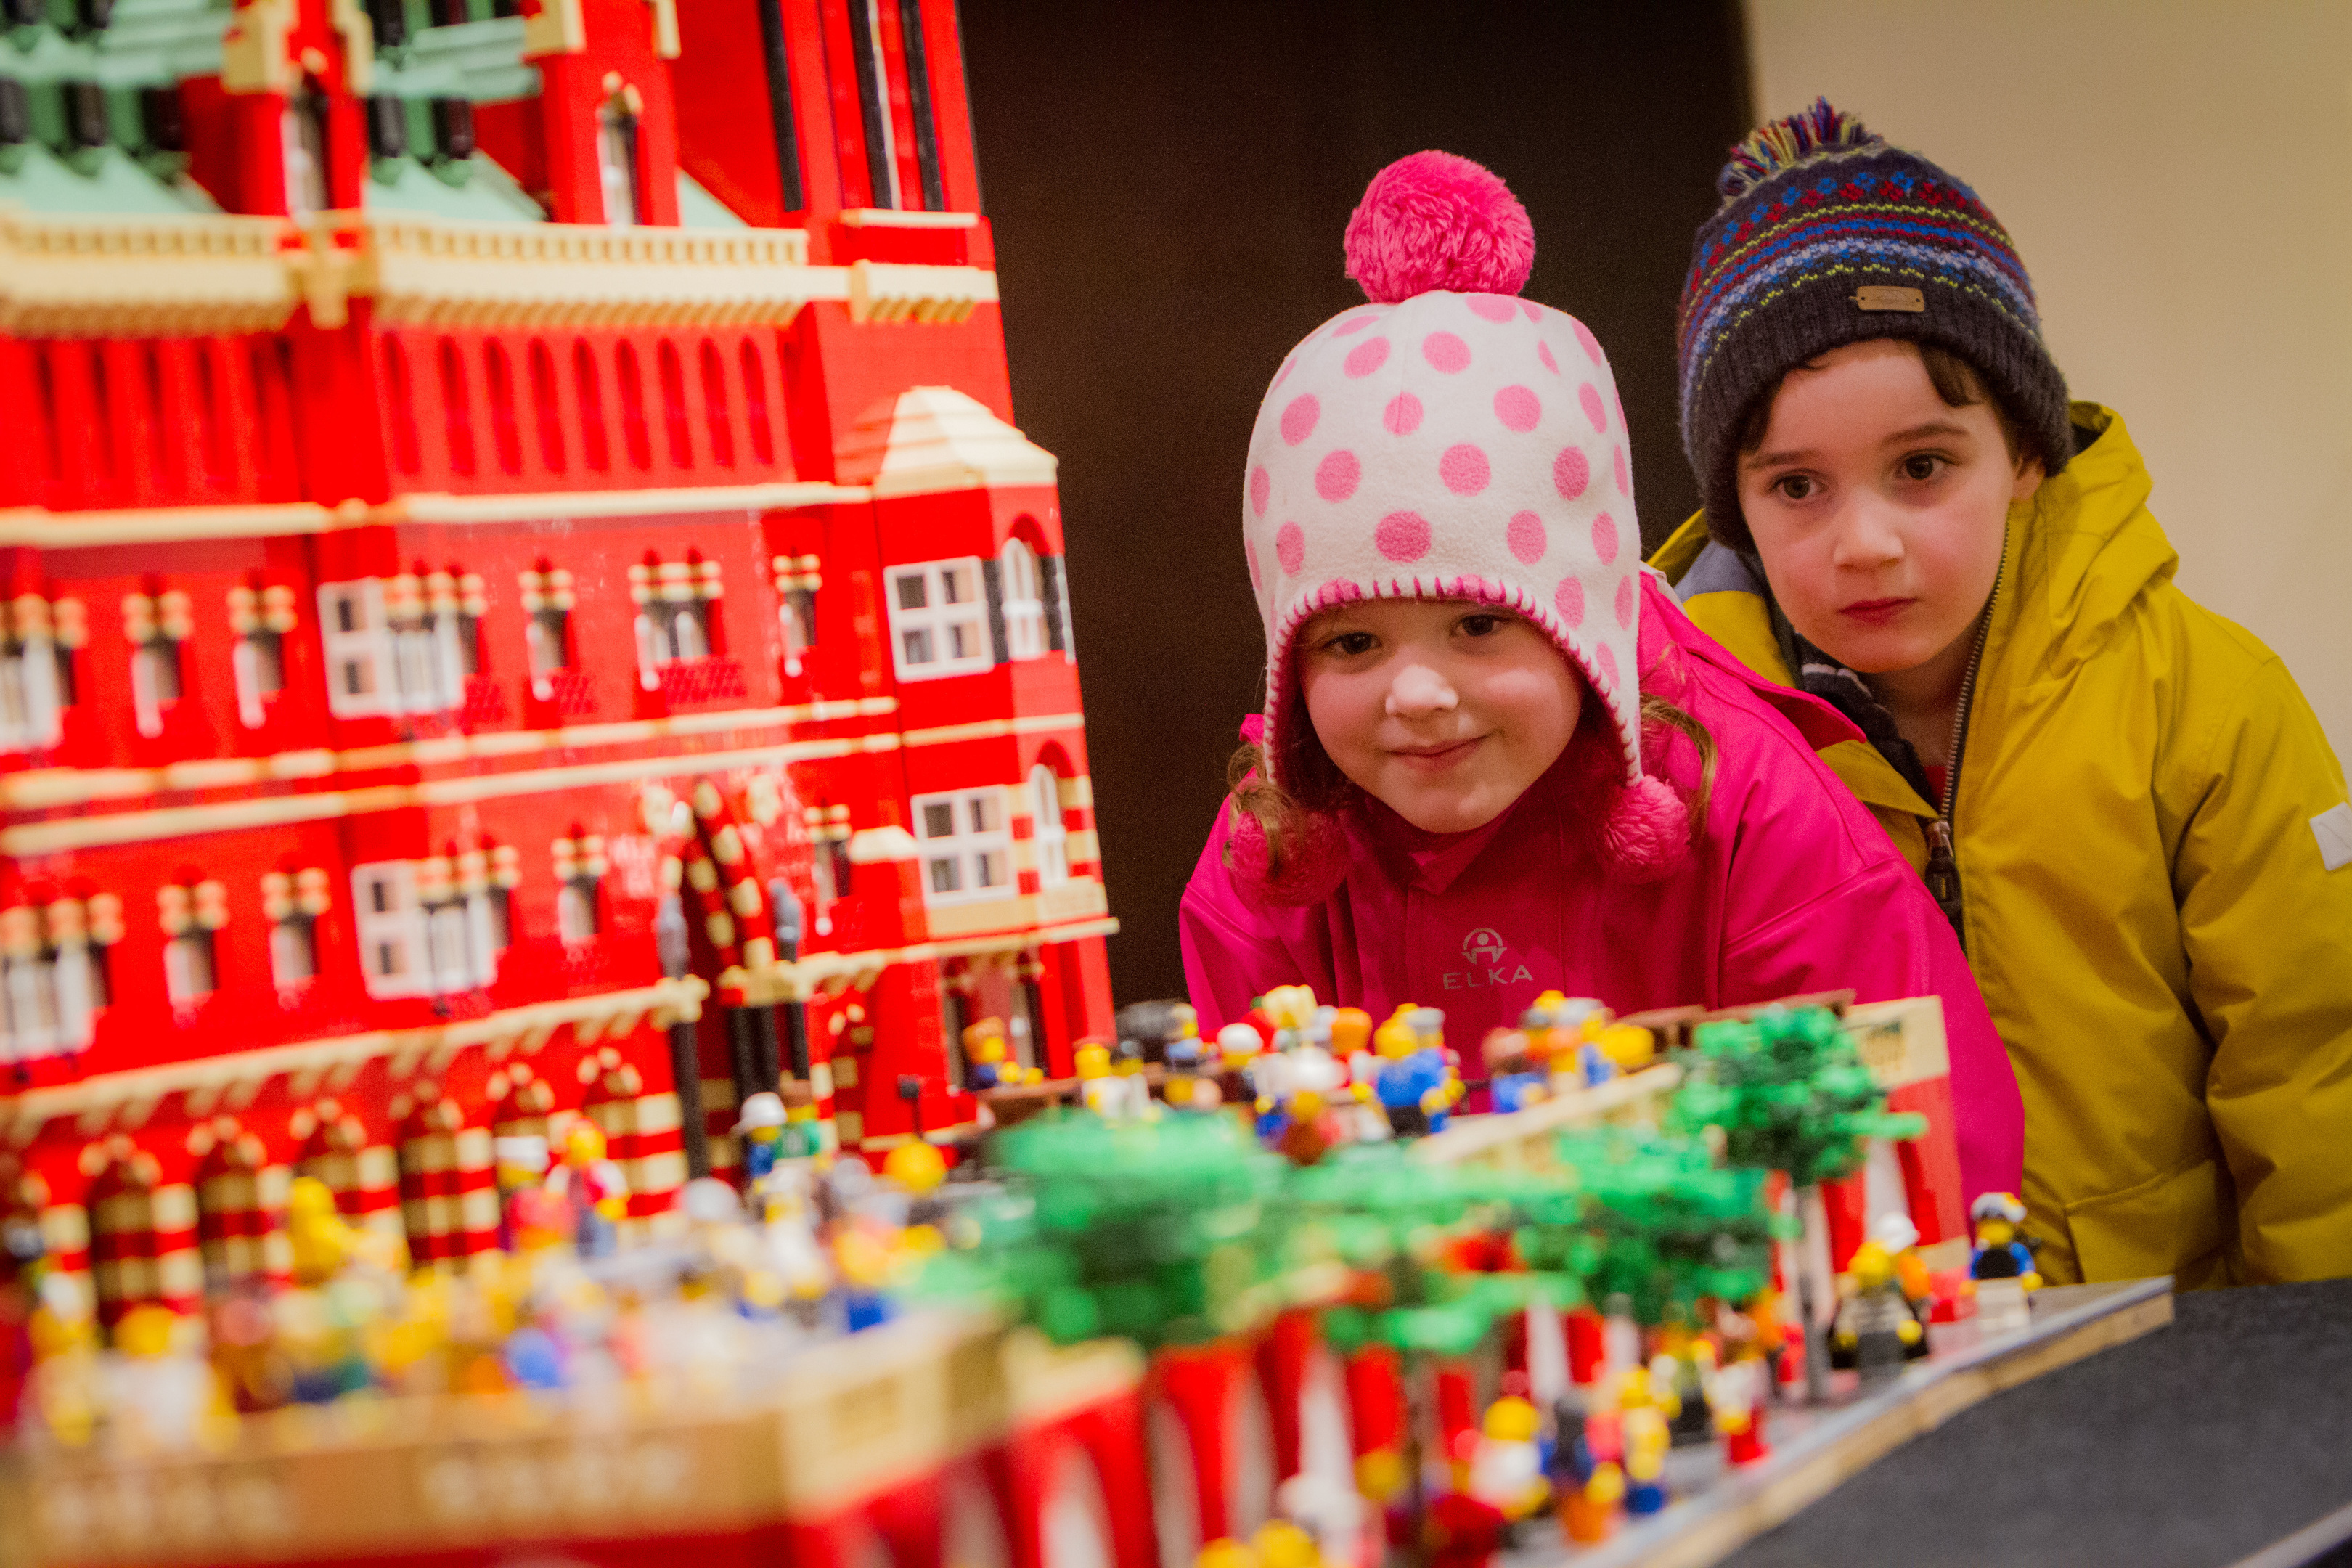 Seth Mendes (aged 4) and Grace McKeag (aged 4) from Viewlands Nursery, enjoying a visit to the Lego exhibit